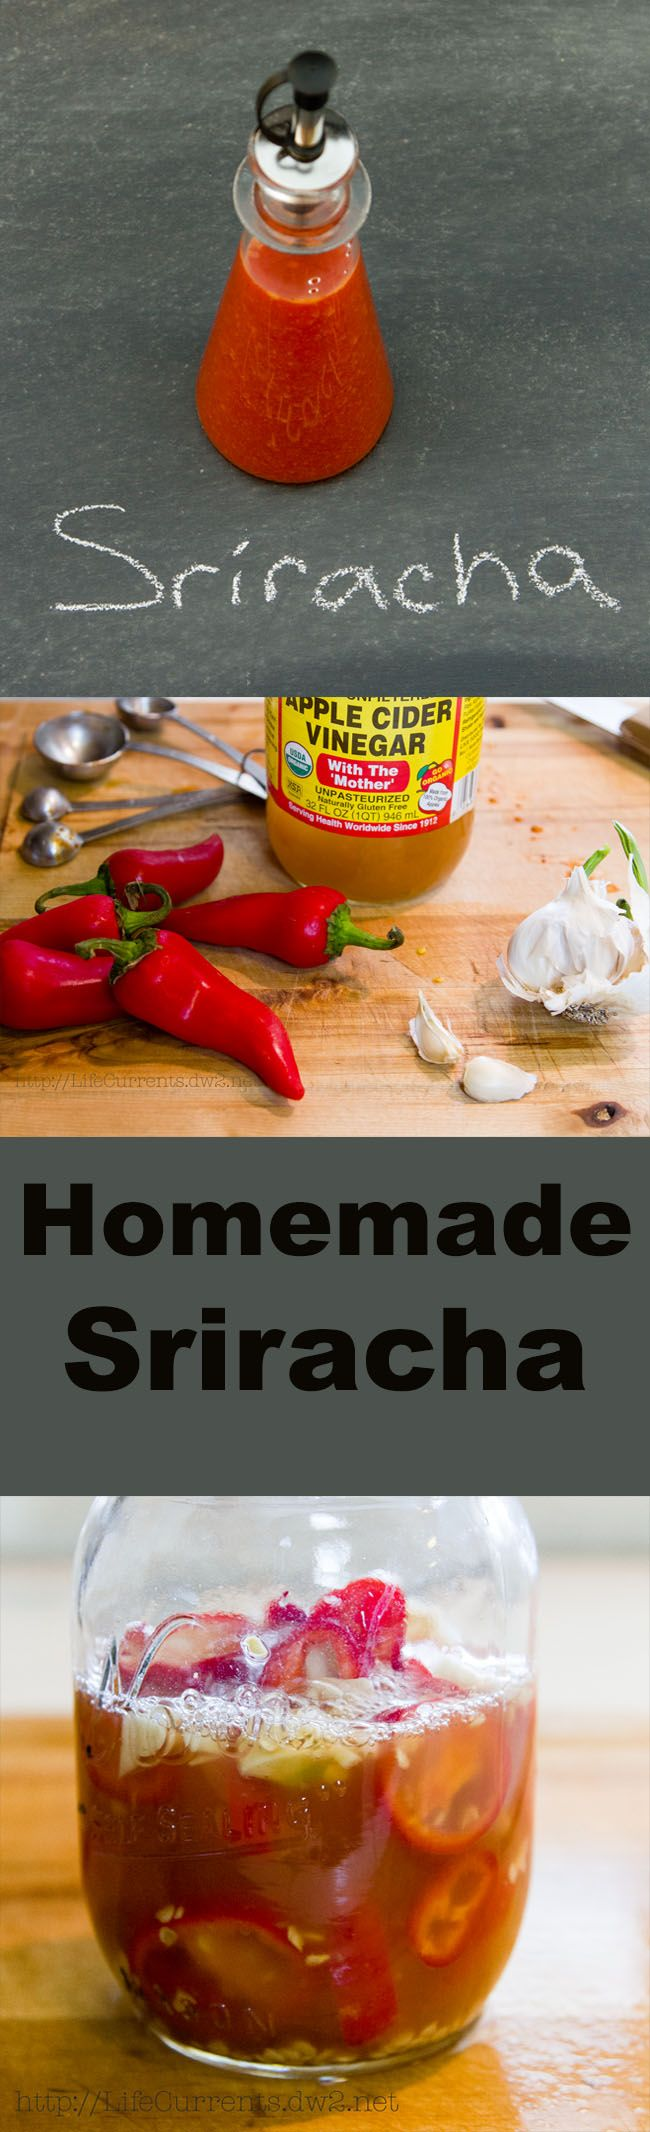 Homemade Sriracha - make your own at home!